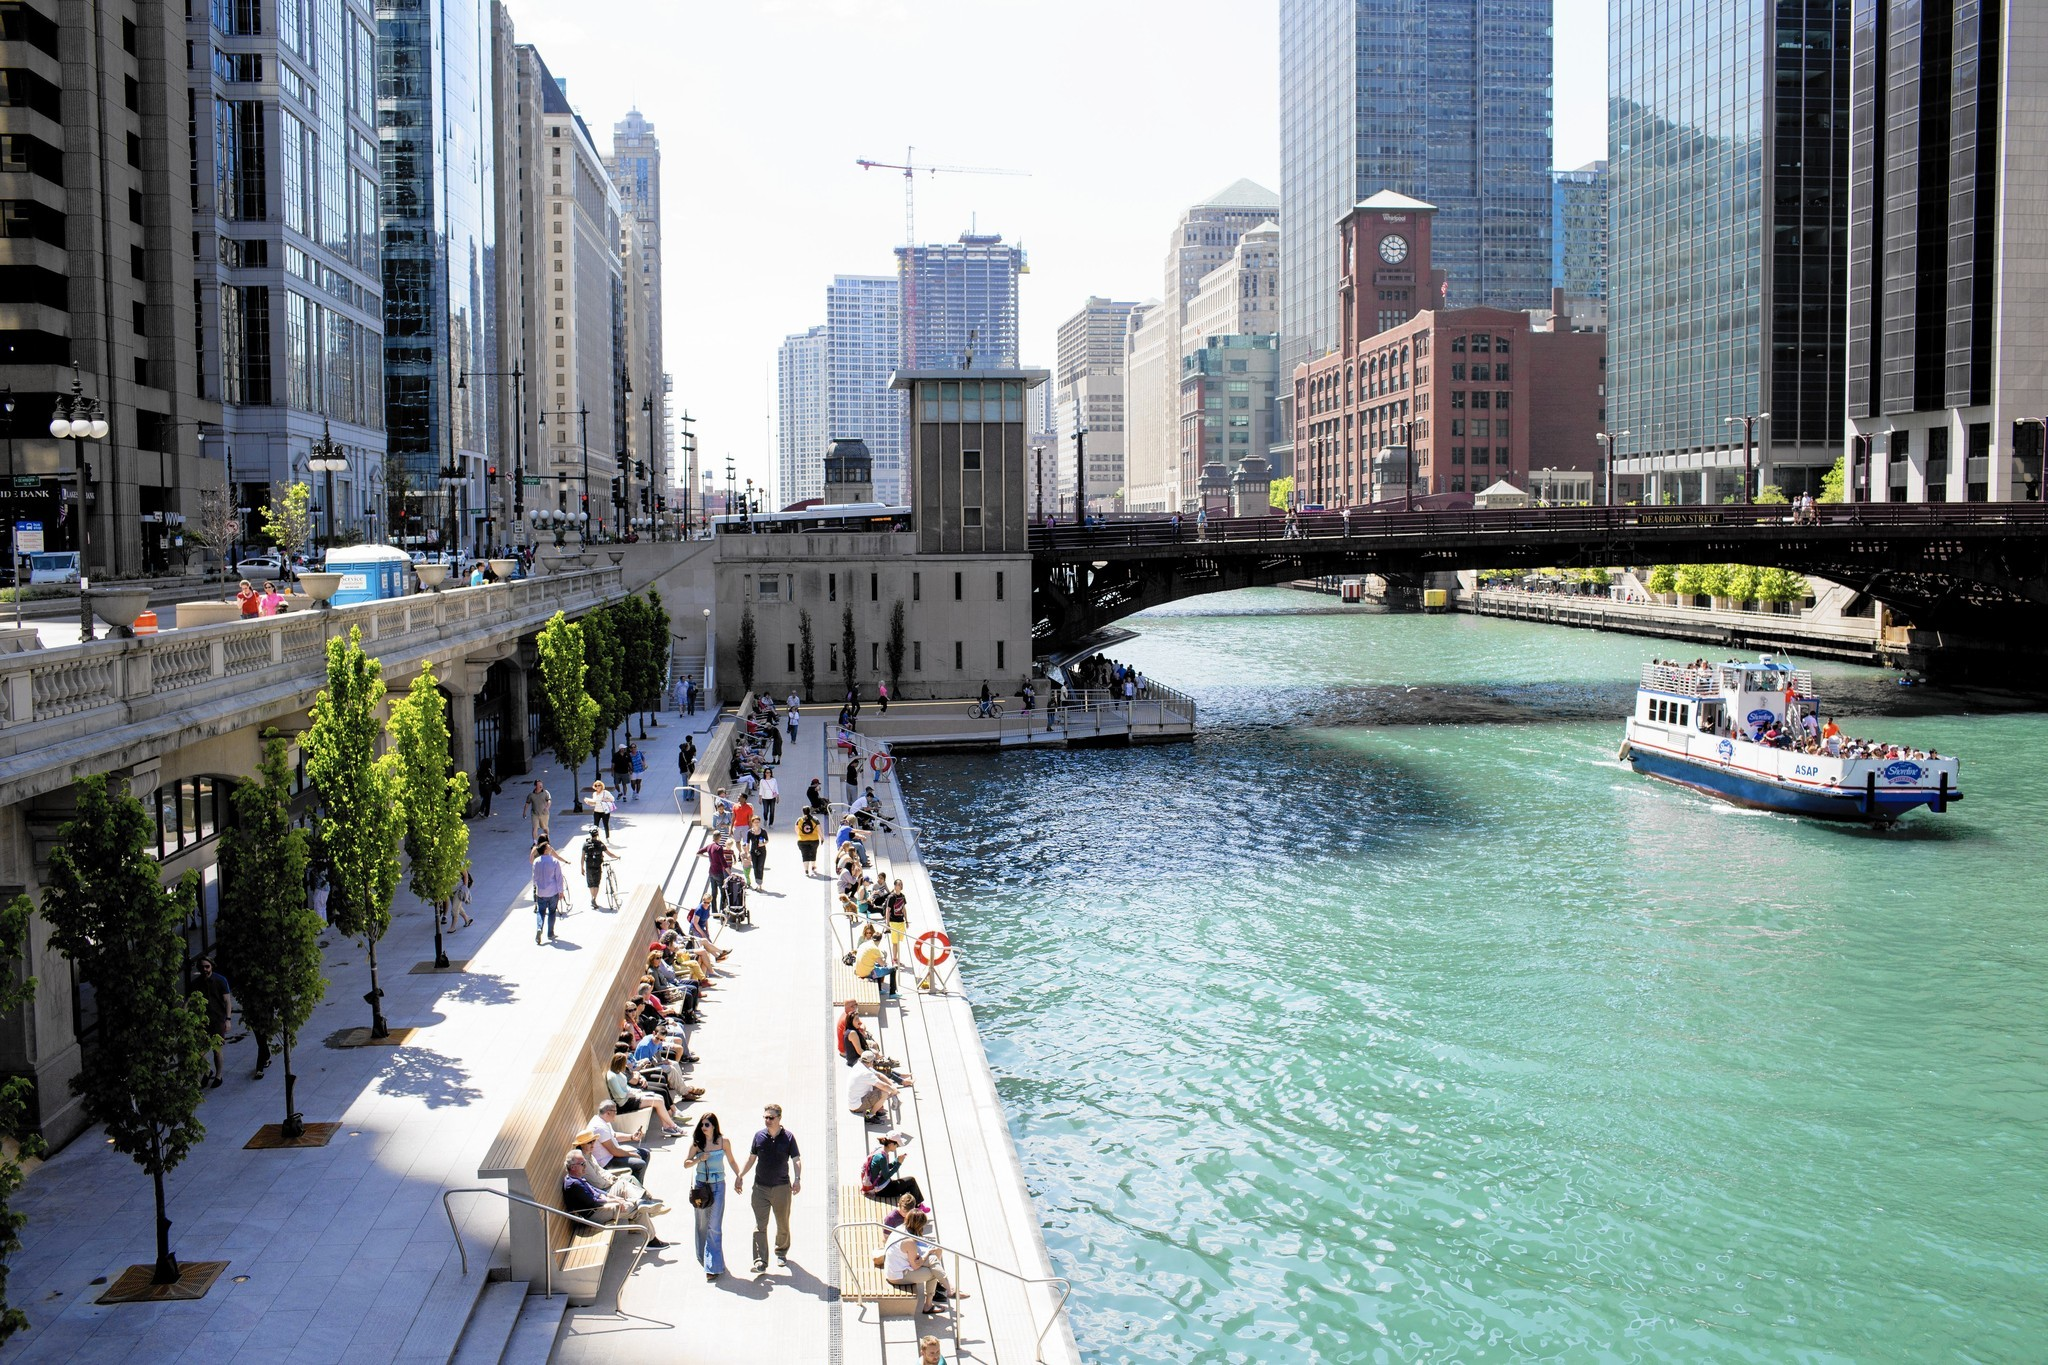 Landscape architecture comes to the fore in Chicago